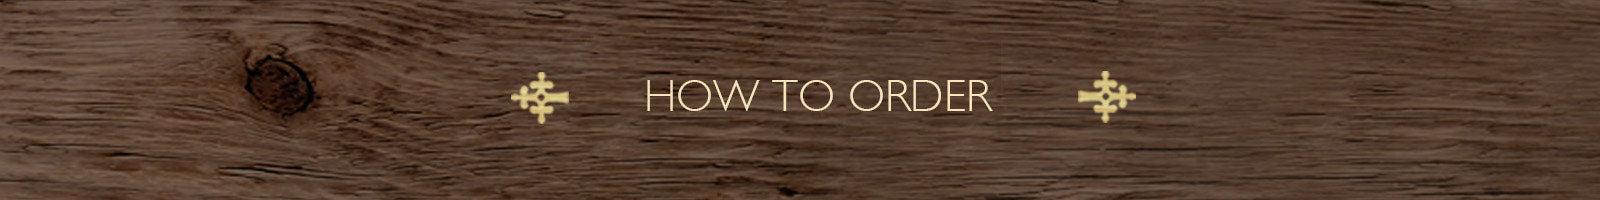 How to order - The India Craft House